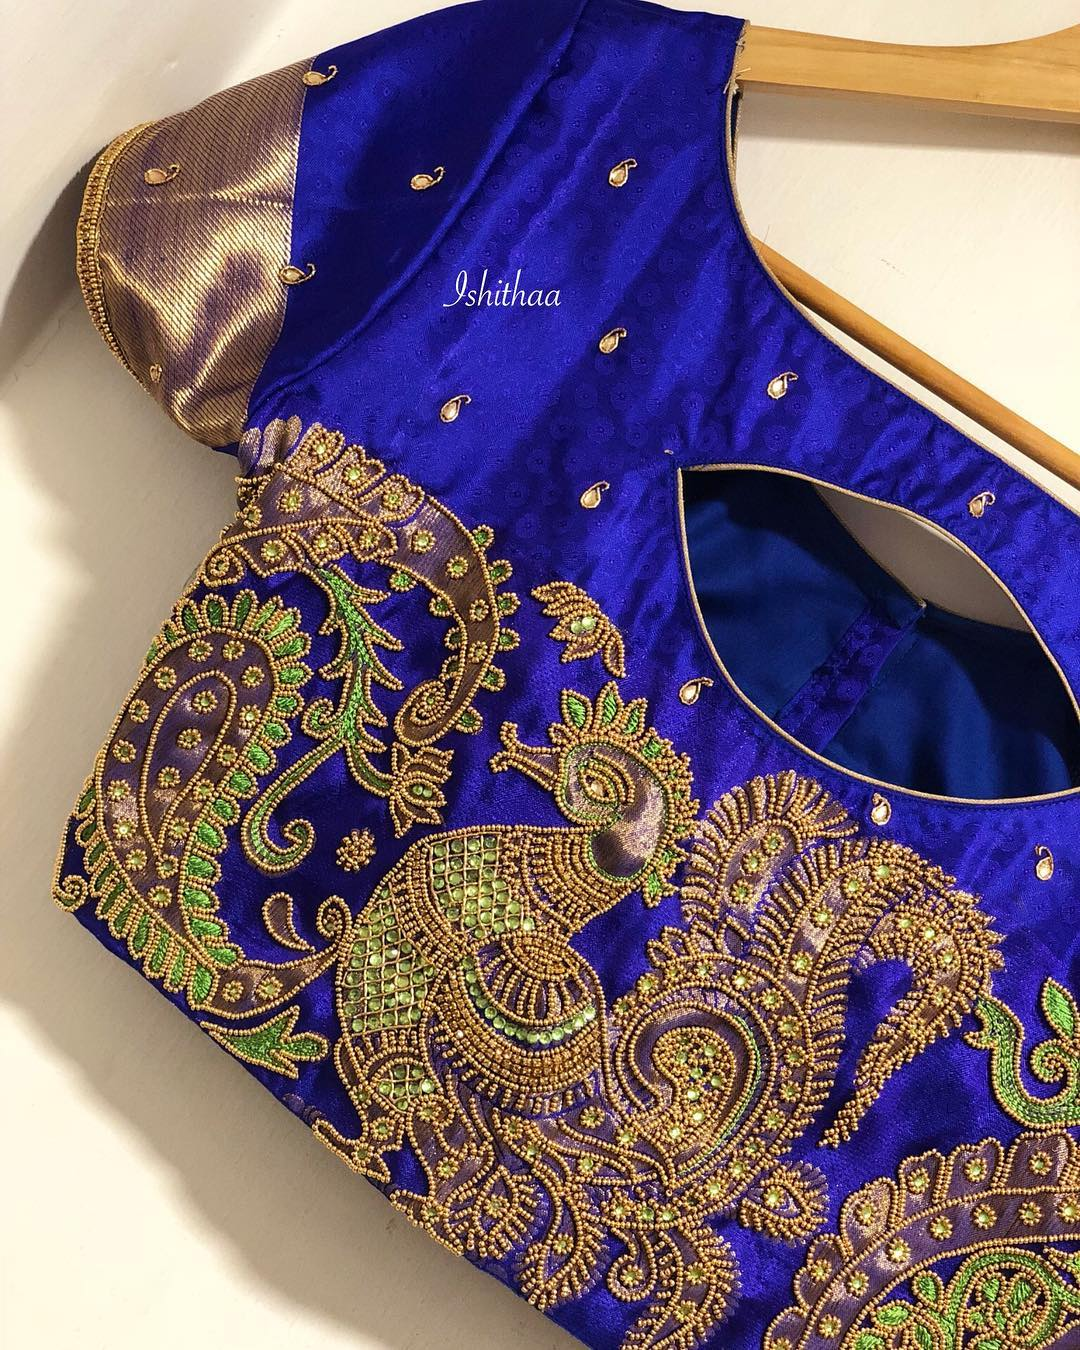 The Royal Blue work blouse